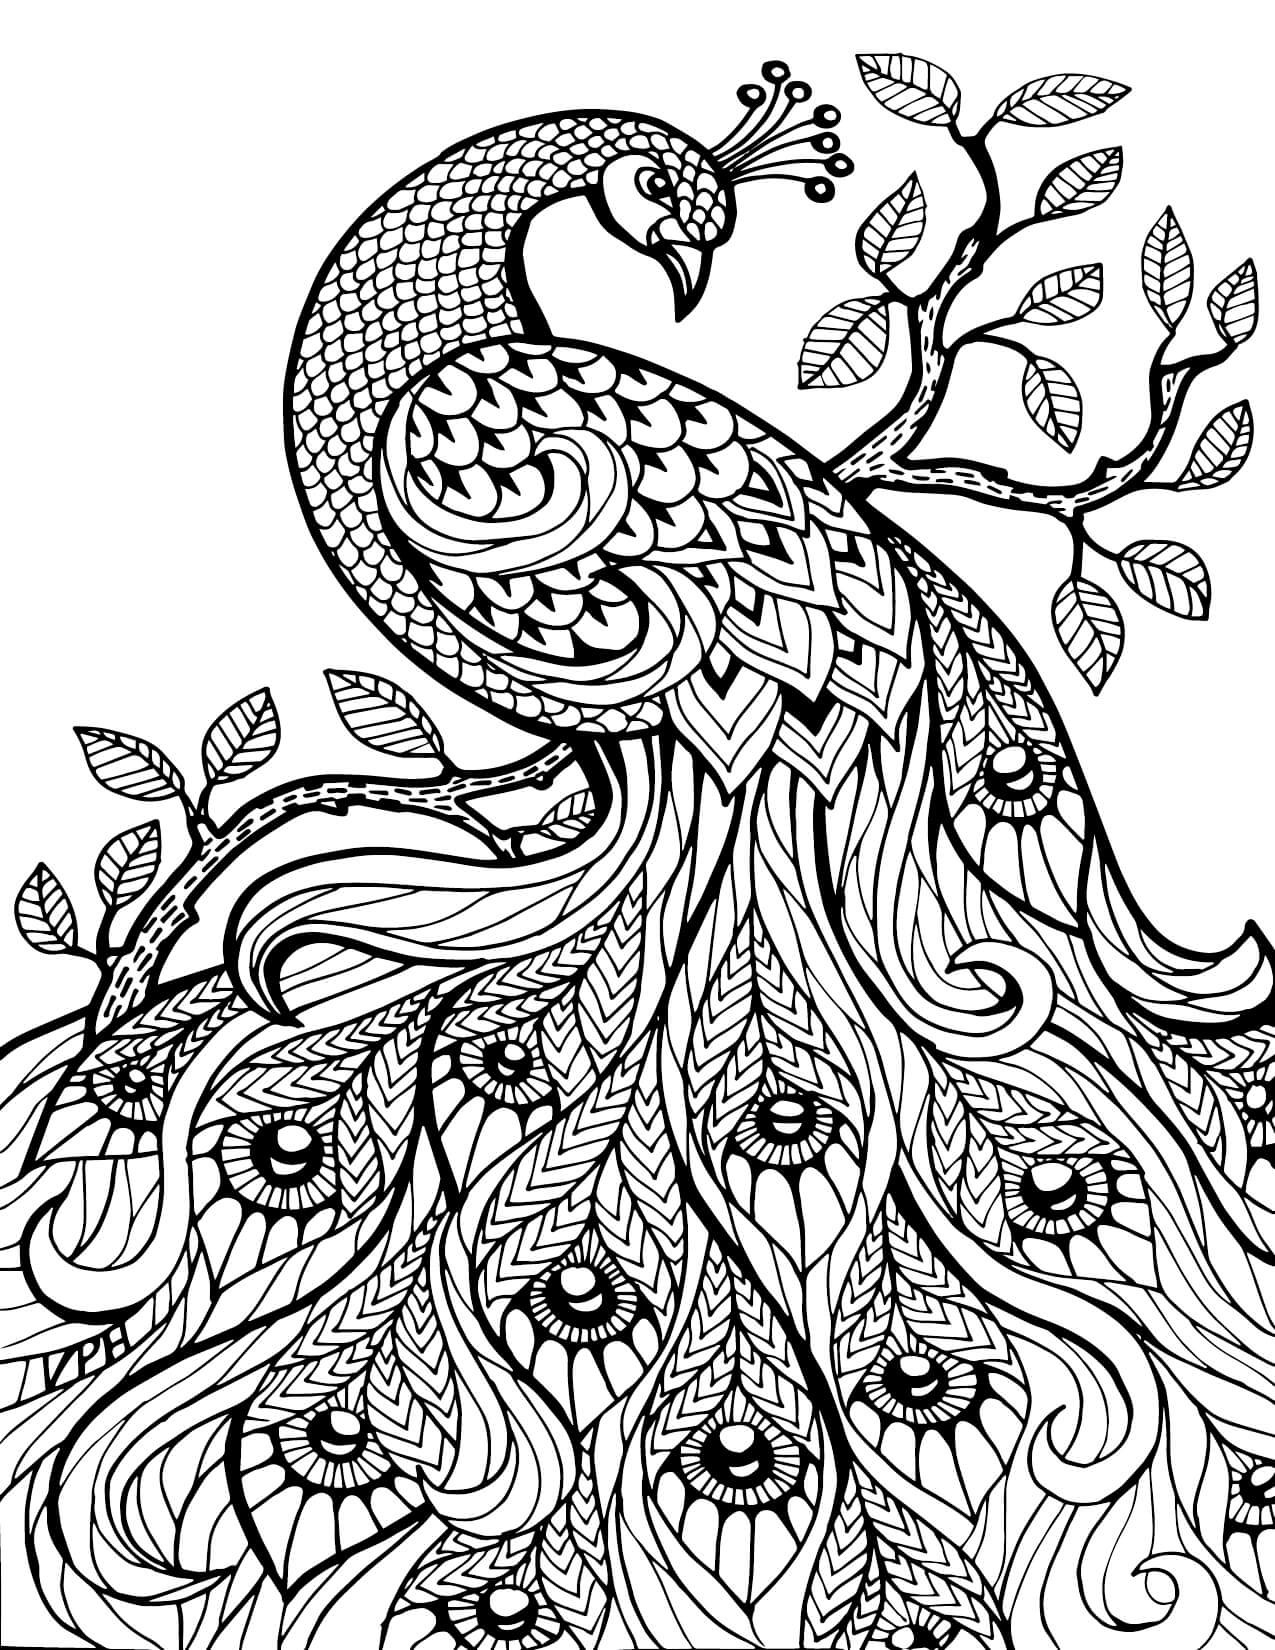 coloring pages for kids hard printable difficult coloring pages coloring home coloring pages kids hard for